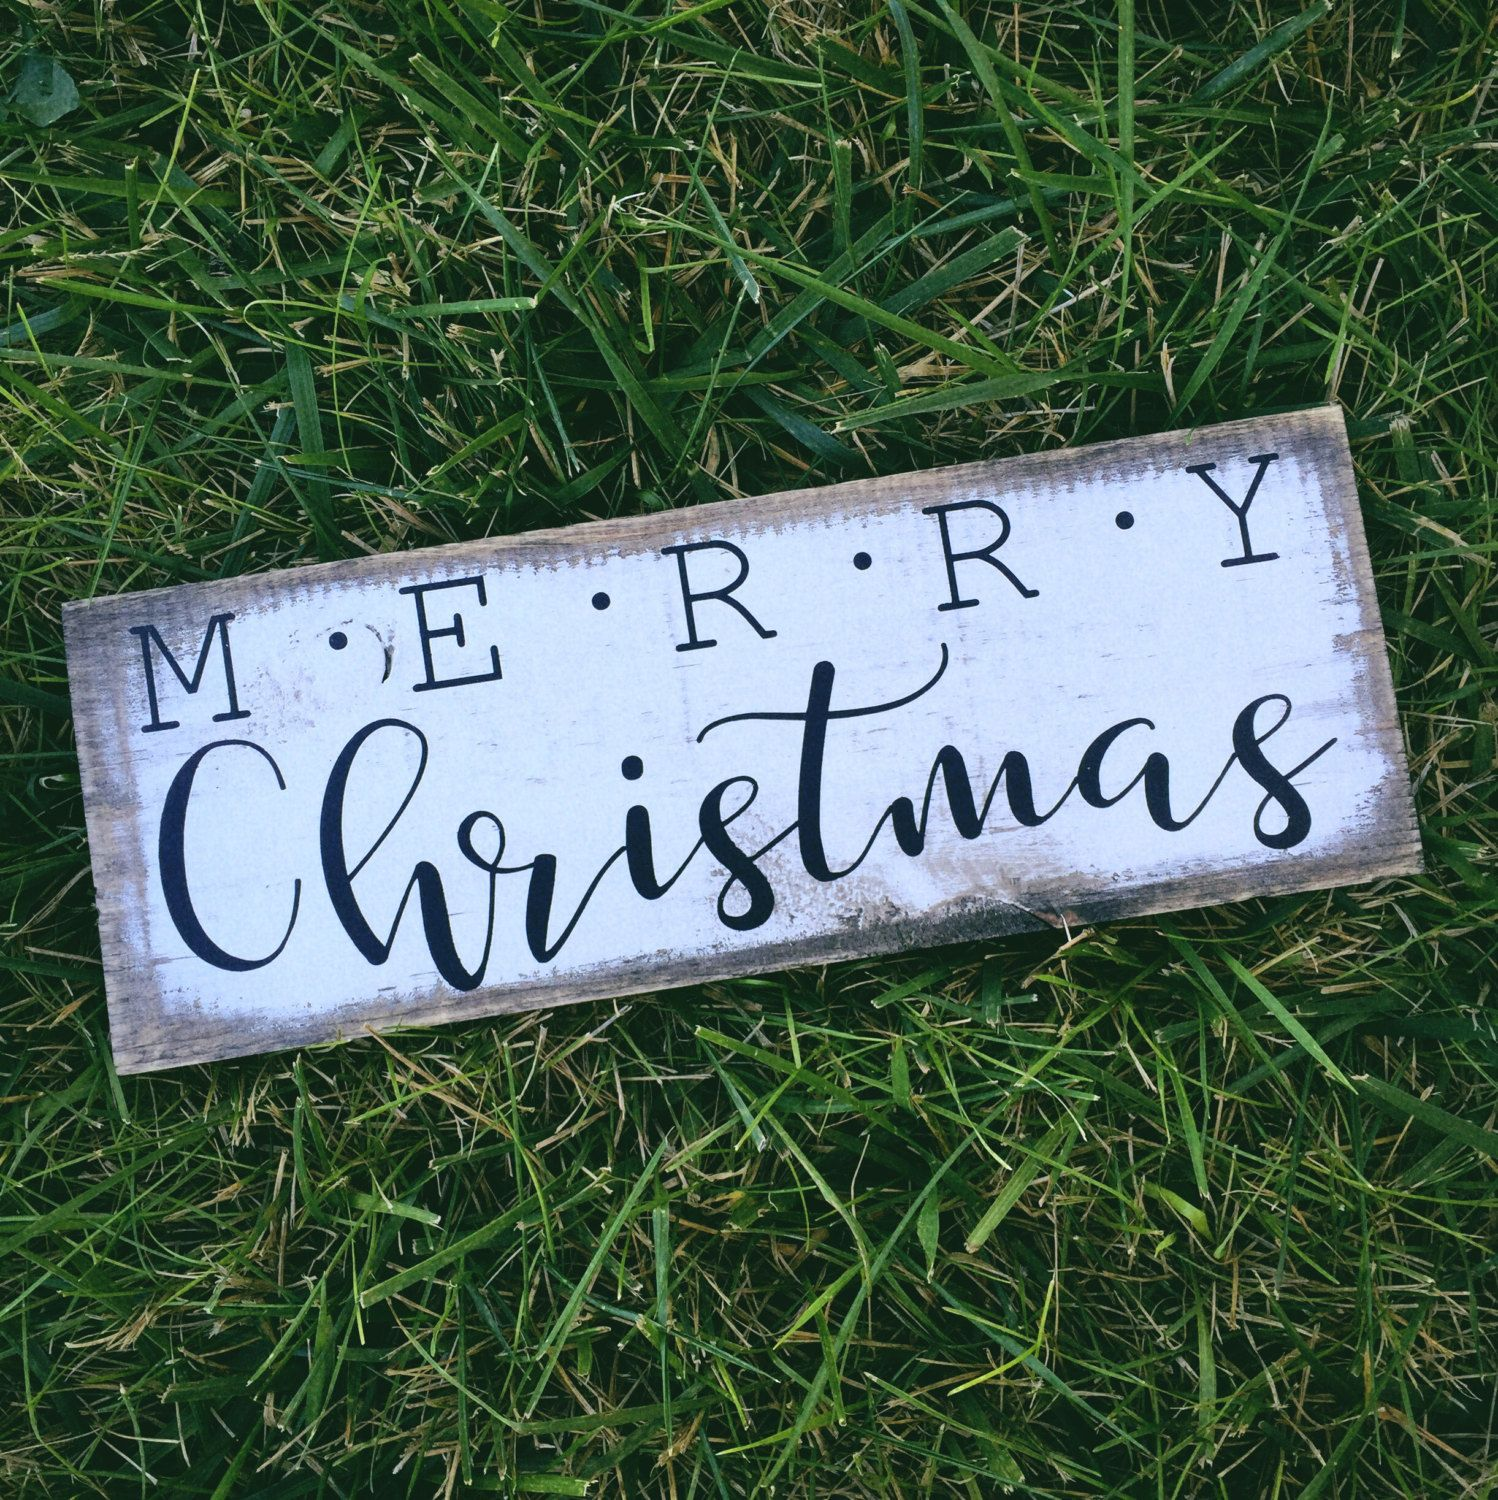 Merry christmas rustic wood sign minimalist dcor farmhouse merry christmas rustic wood sign minimalist dcor farmhouse sign holiday dcor solutioingenieria Images